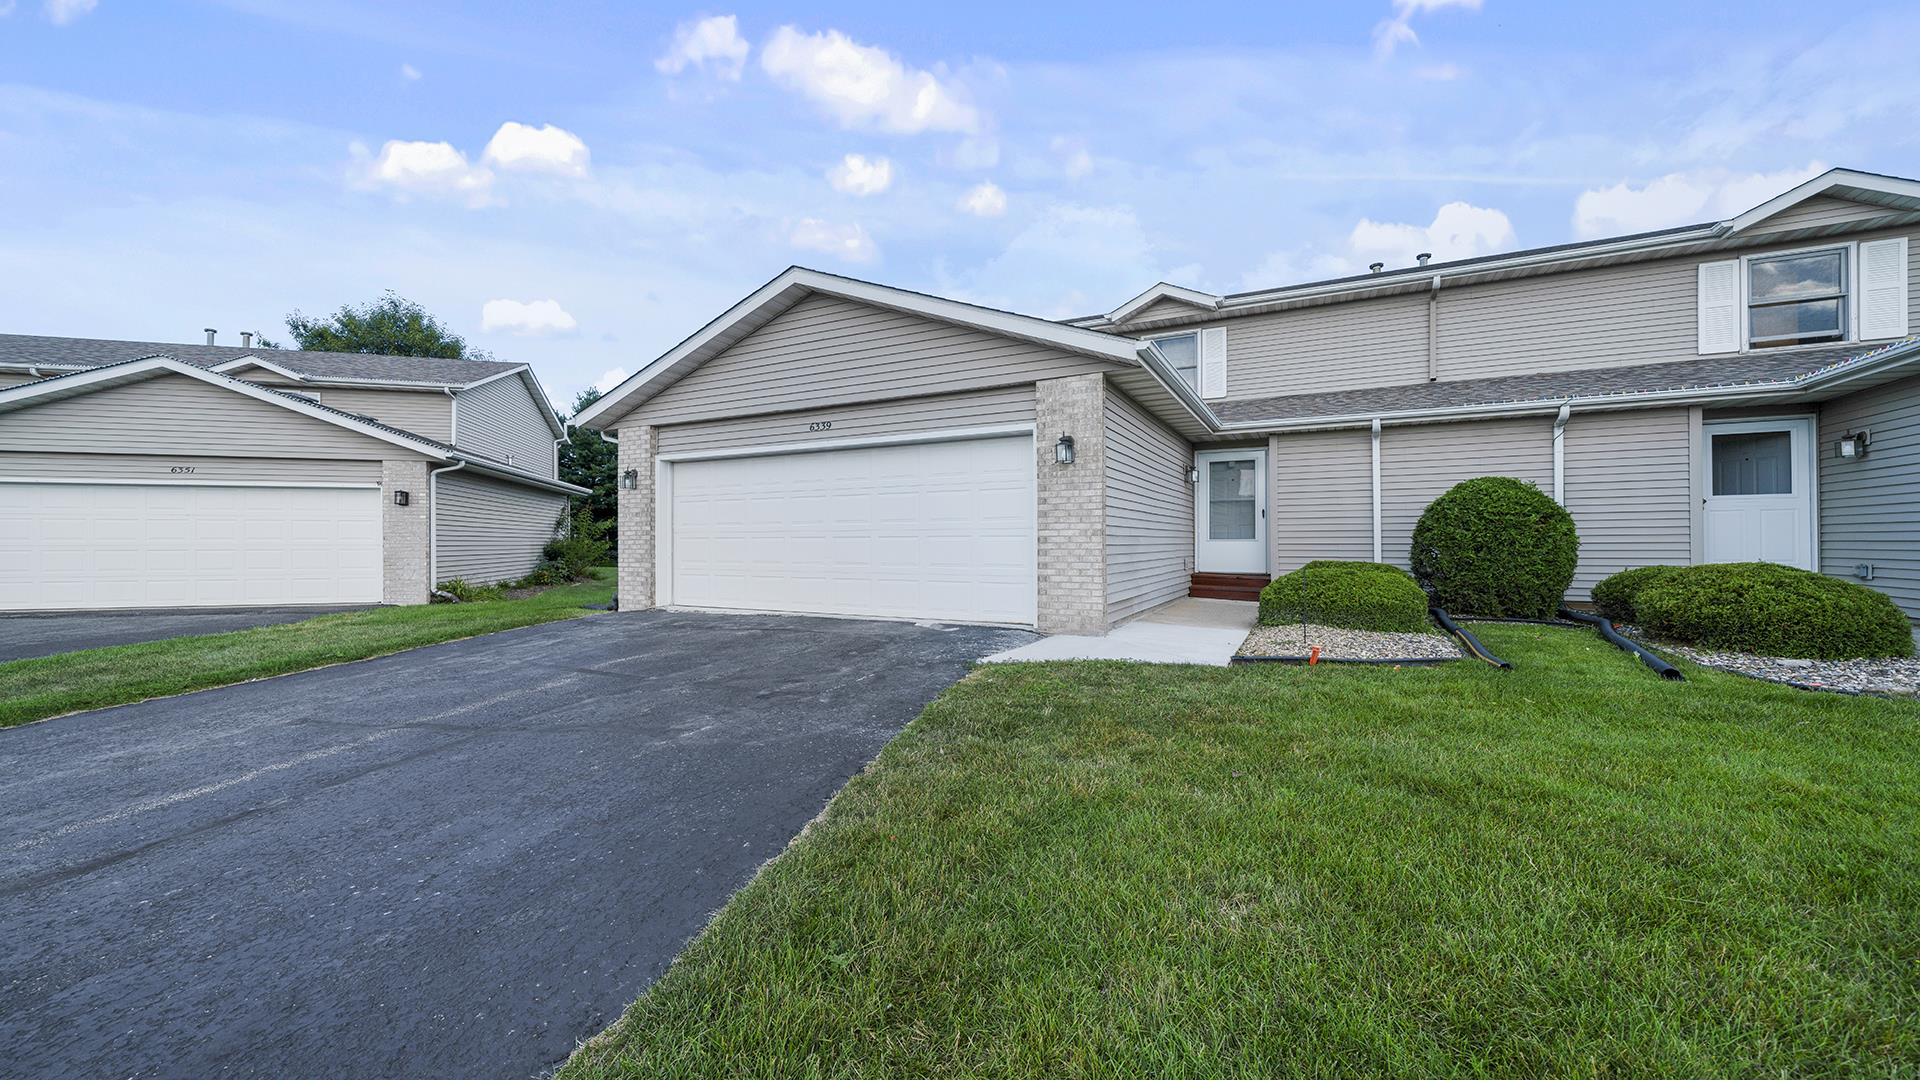 6339 Carriage Green Way #-, Rockford, IL 61108 - #: 11143308